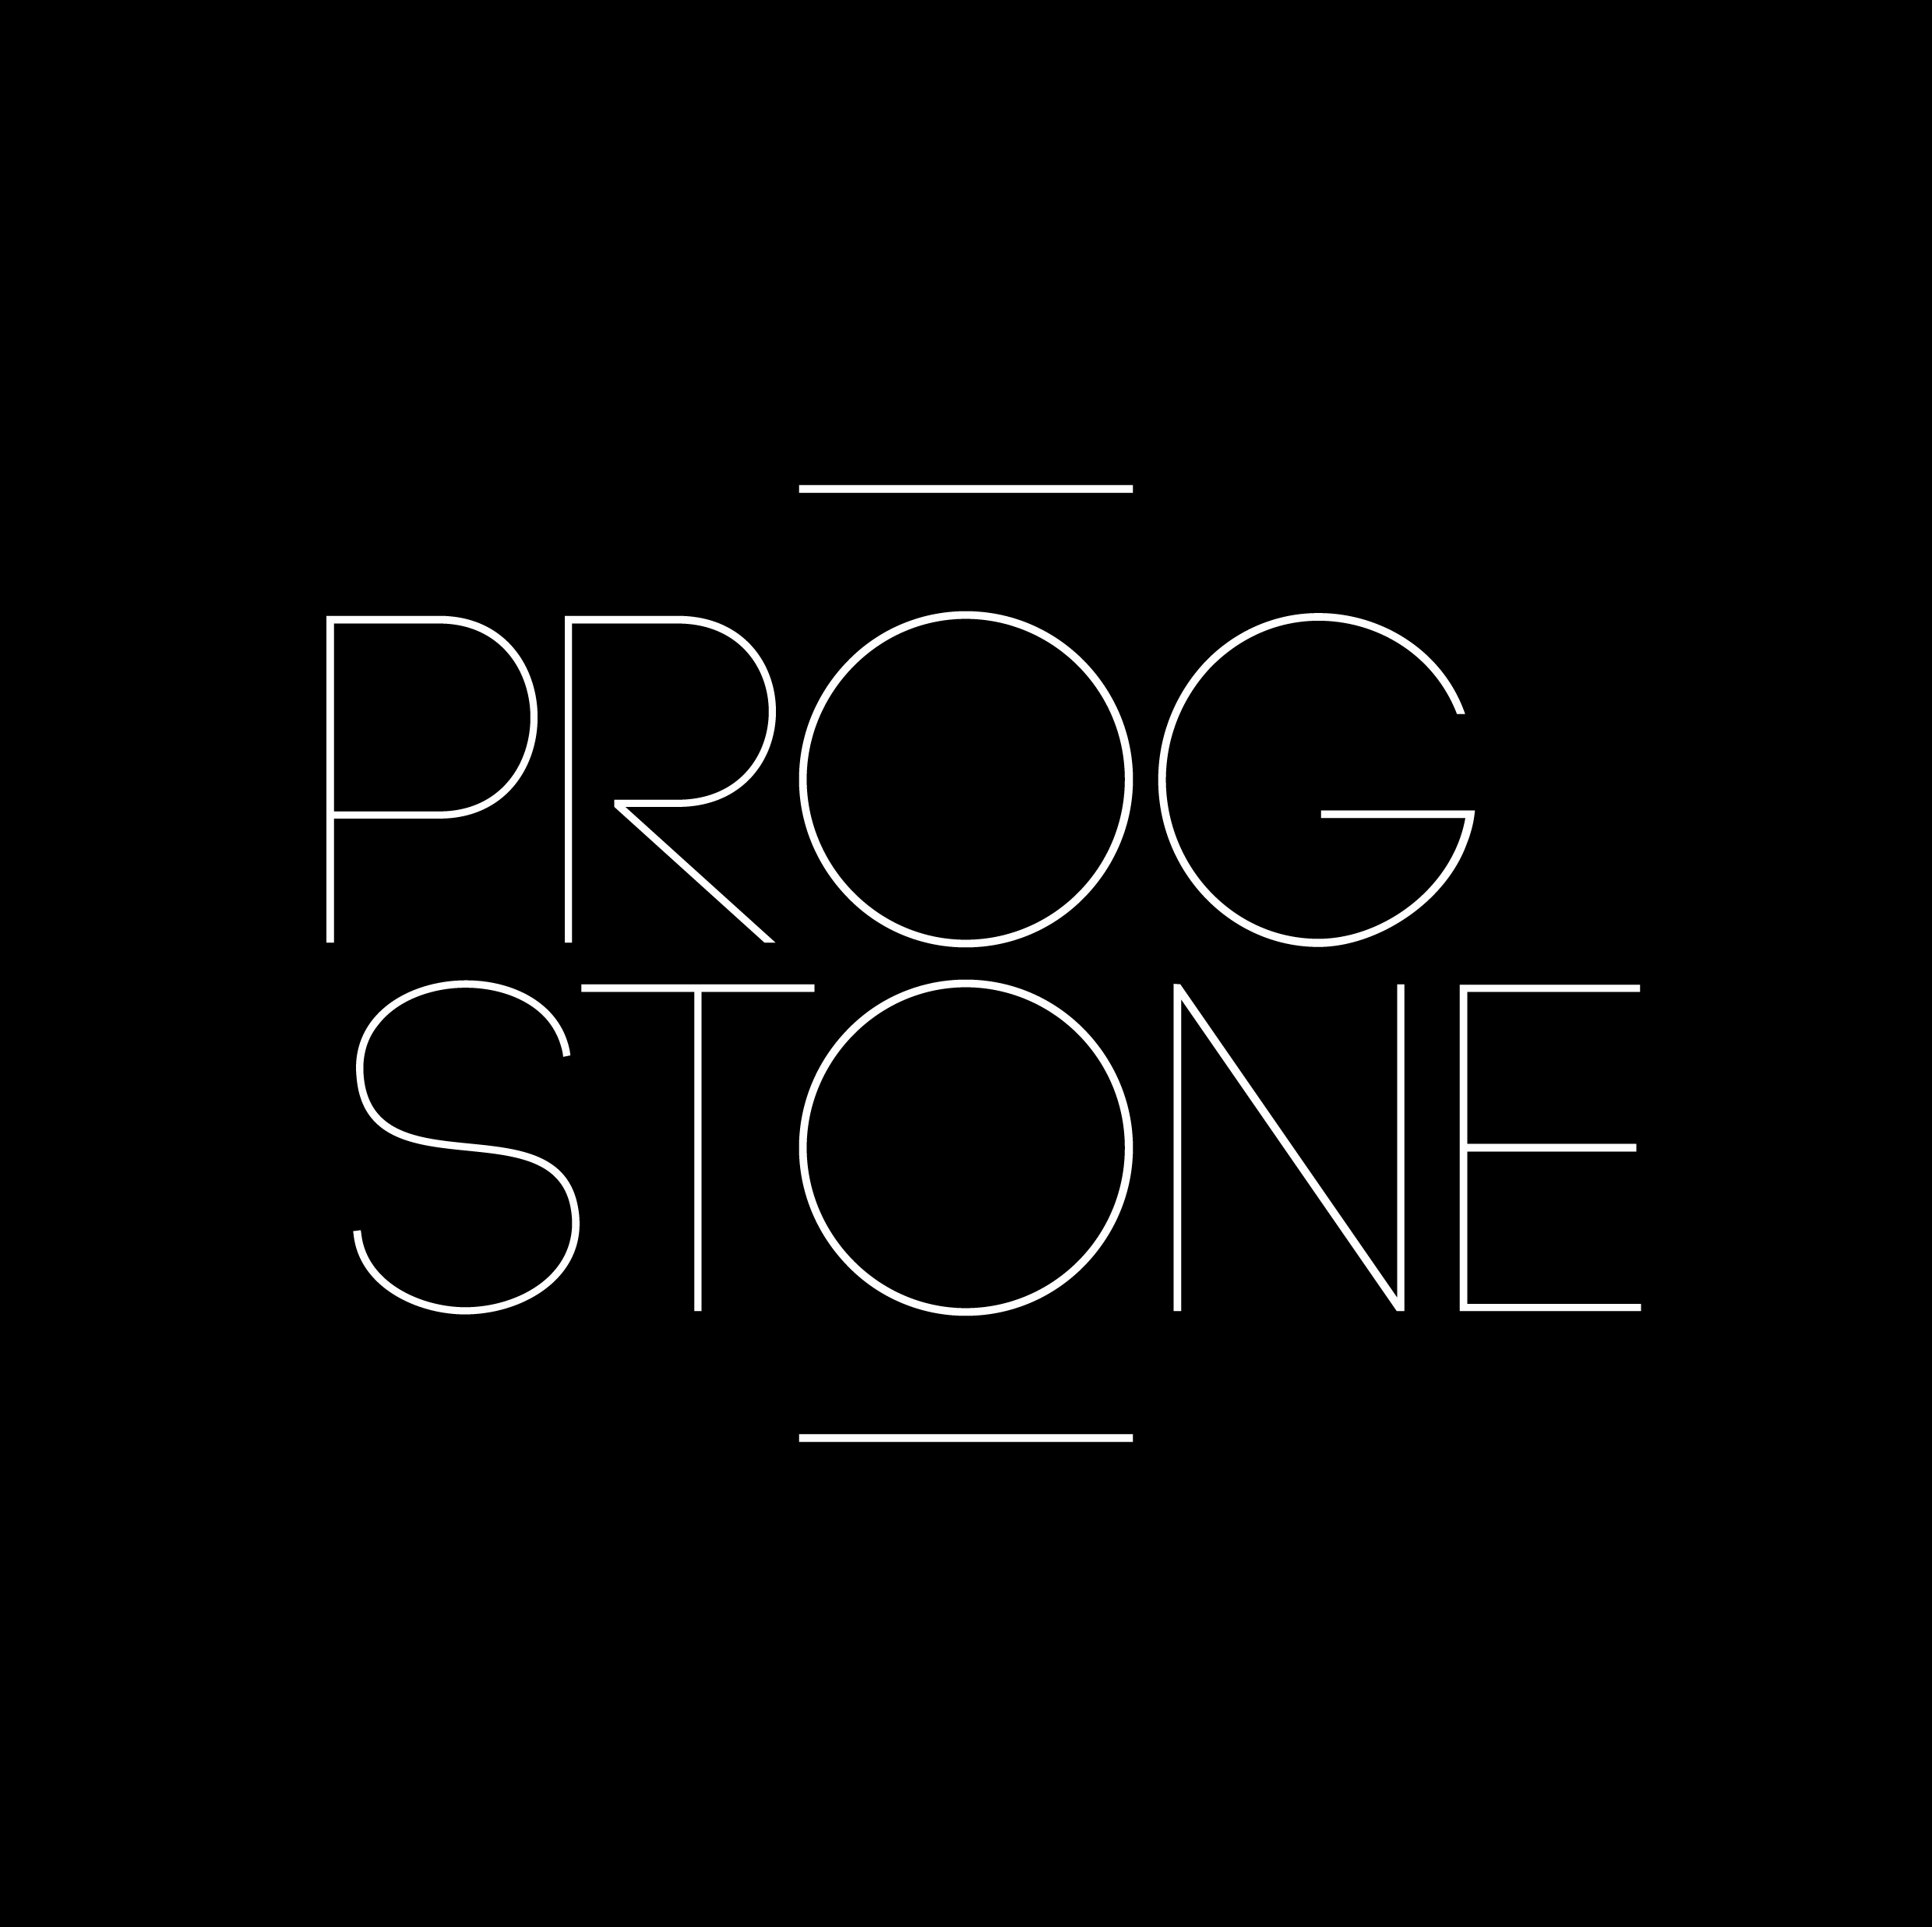 Progstone Welcome In The World Wide Music Contest Visit Http Worldwidemusicontest Com Click On The Button Join Now Su Music Contest Songwriting Singer